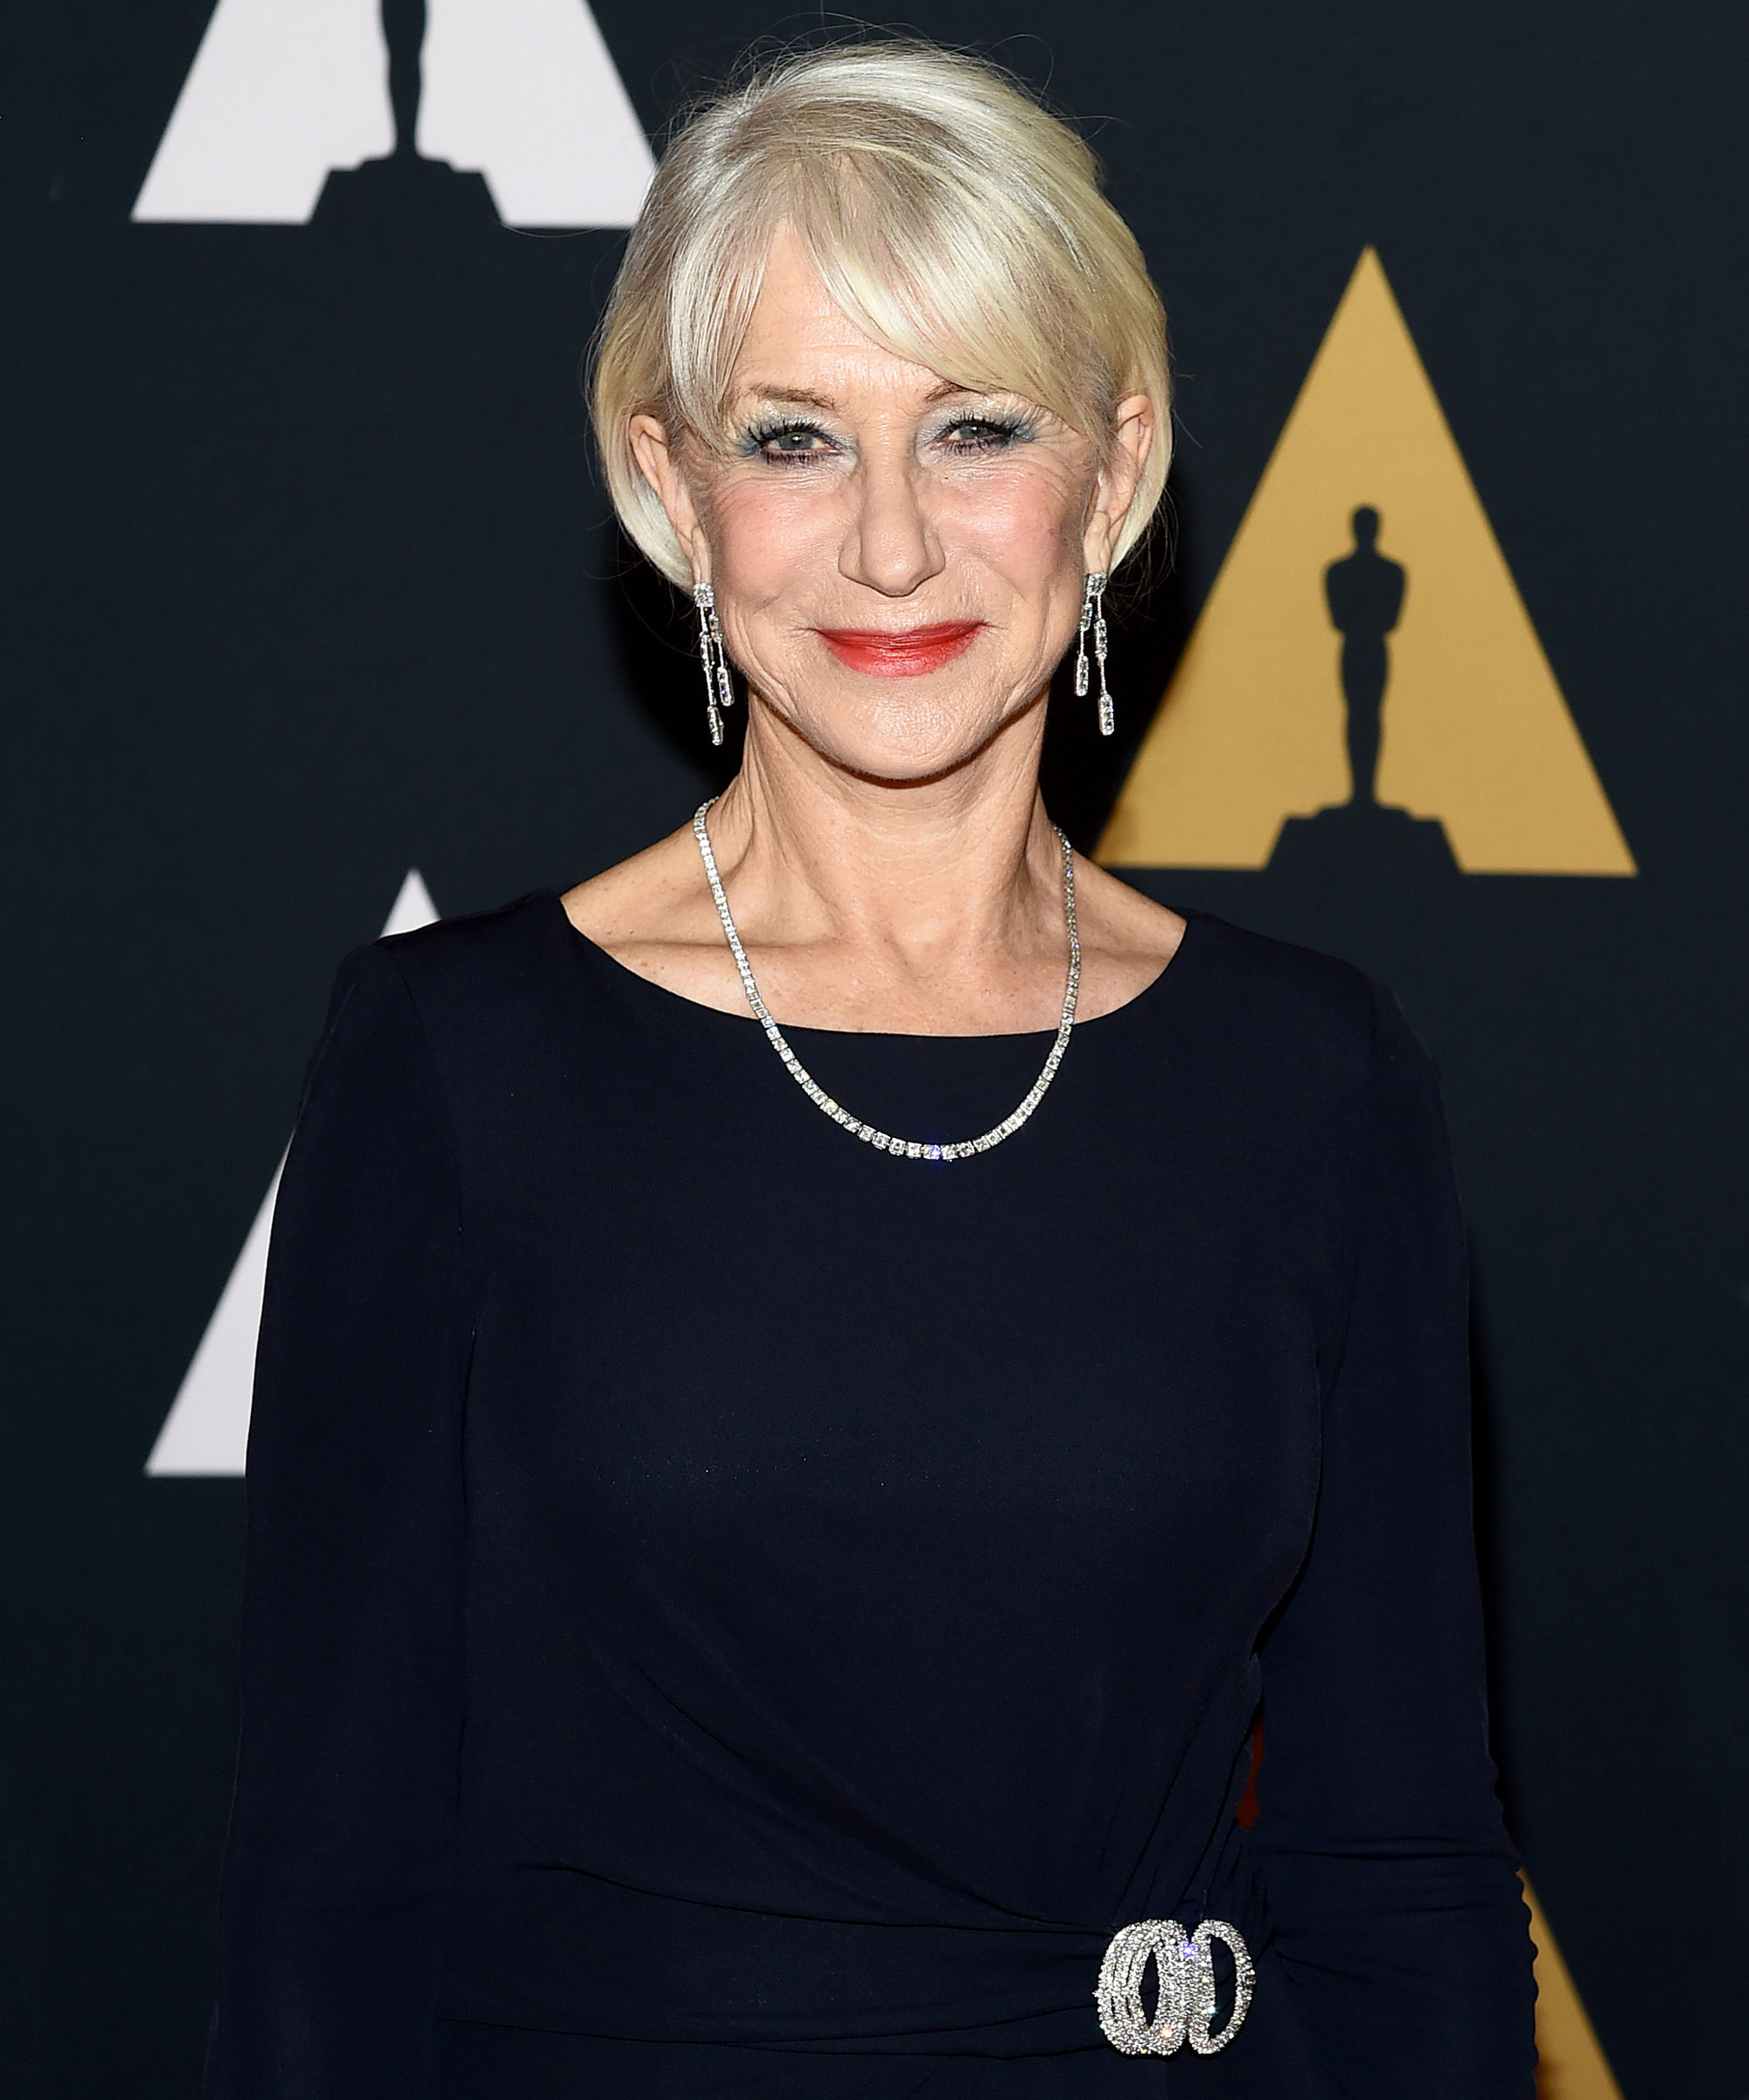 Helen Mirren Haircuts 2017 - Best Hair Cut Ideas 2017